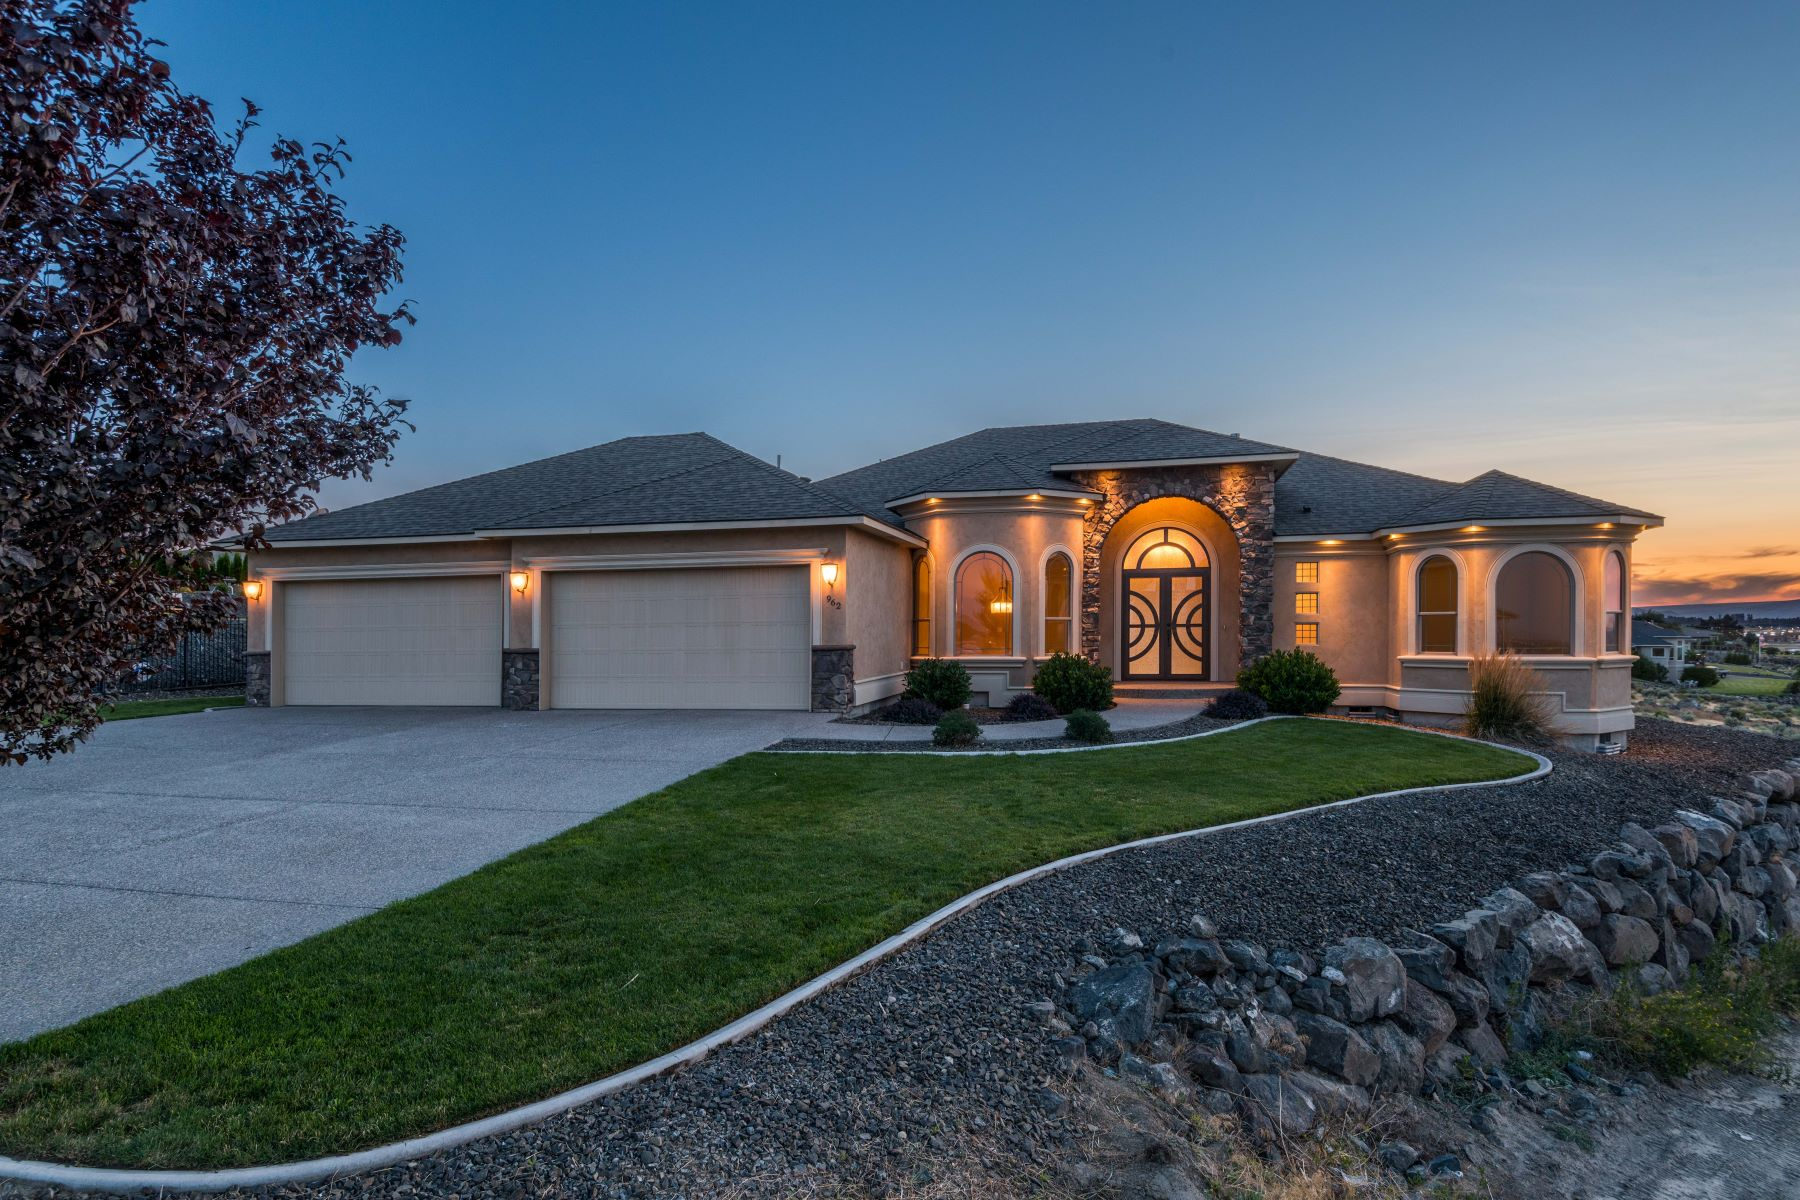 Single Family Homes for Sale at Mediterranean Beauty 962 Allenwhite Drive Richland, Washington 99352 United States